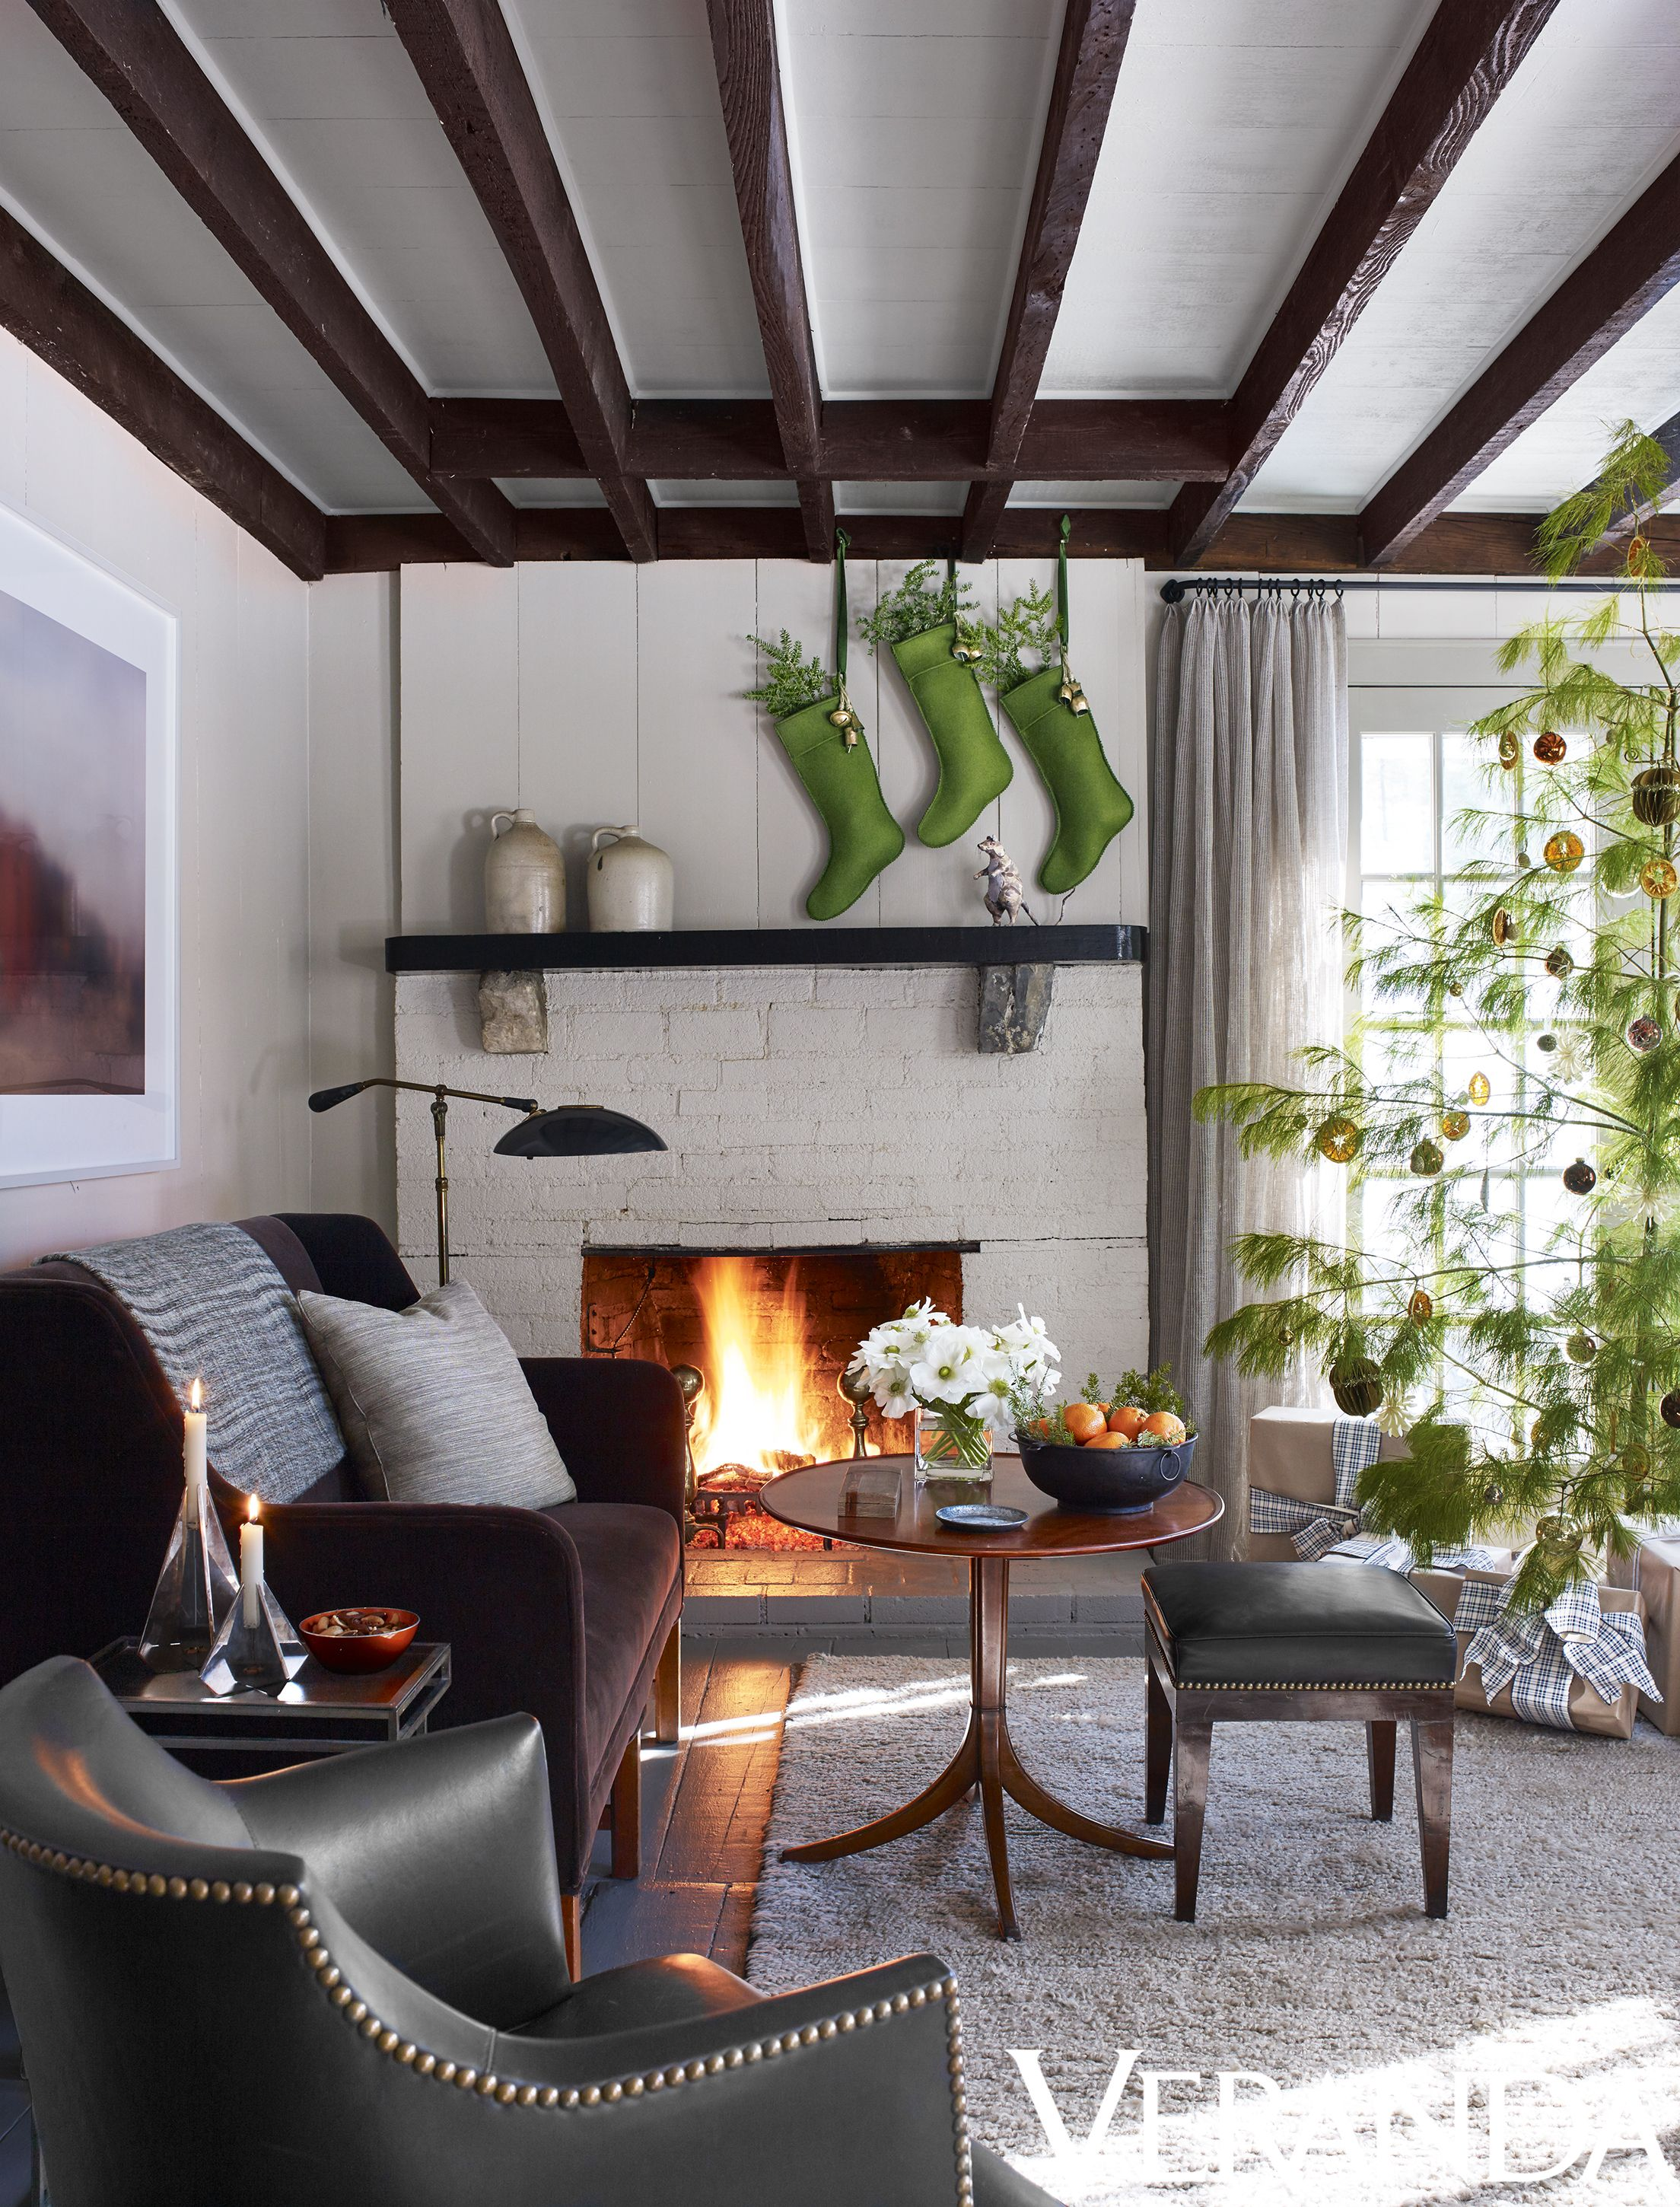 Design For Fireplace 25 Fireplace Ideas Best Fireplace Designs In Every Style